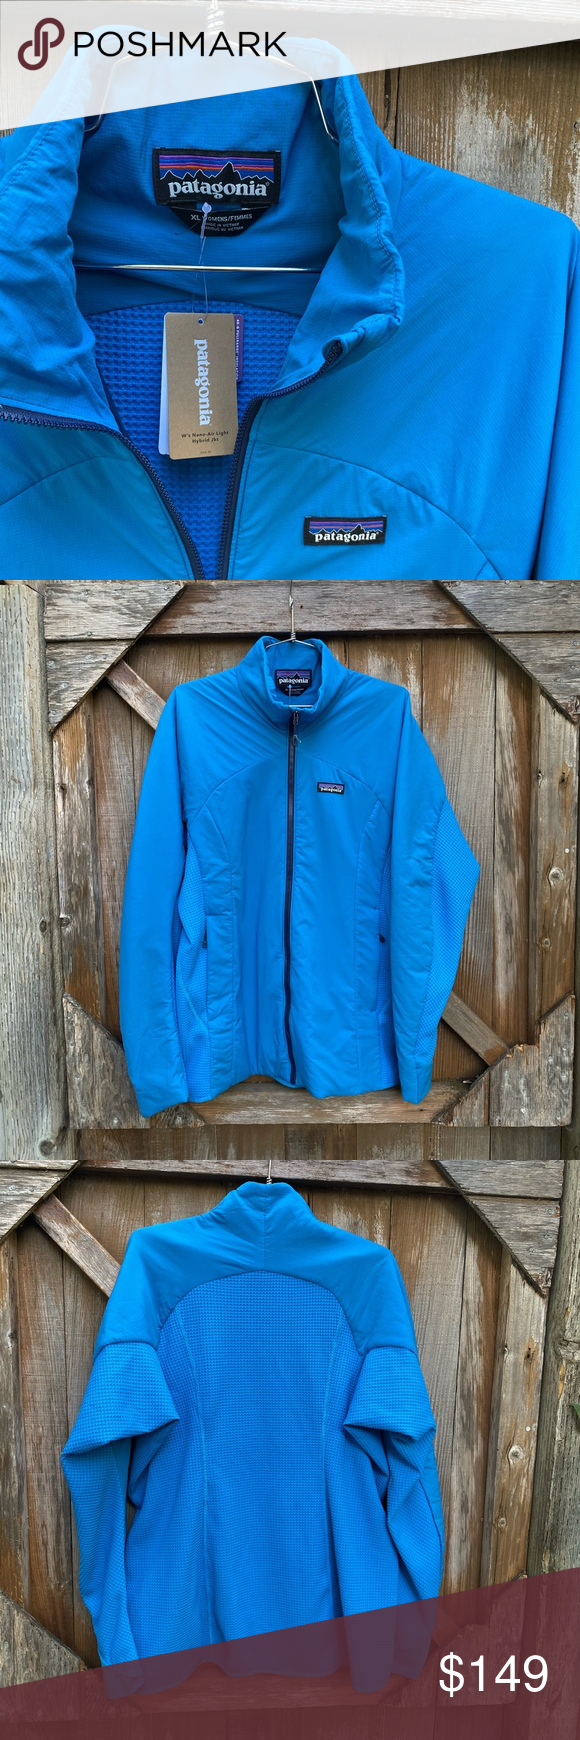 NWT Patagonia NanoAir Light Hybrid Women's Jacket NWT